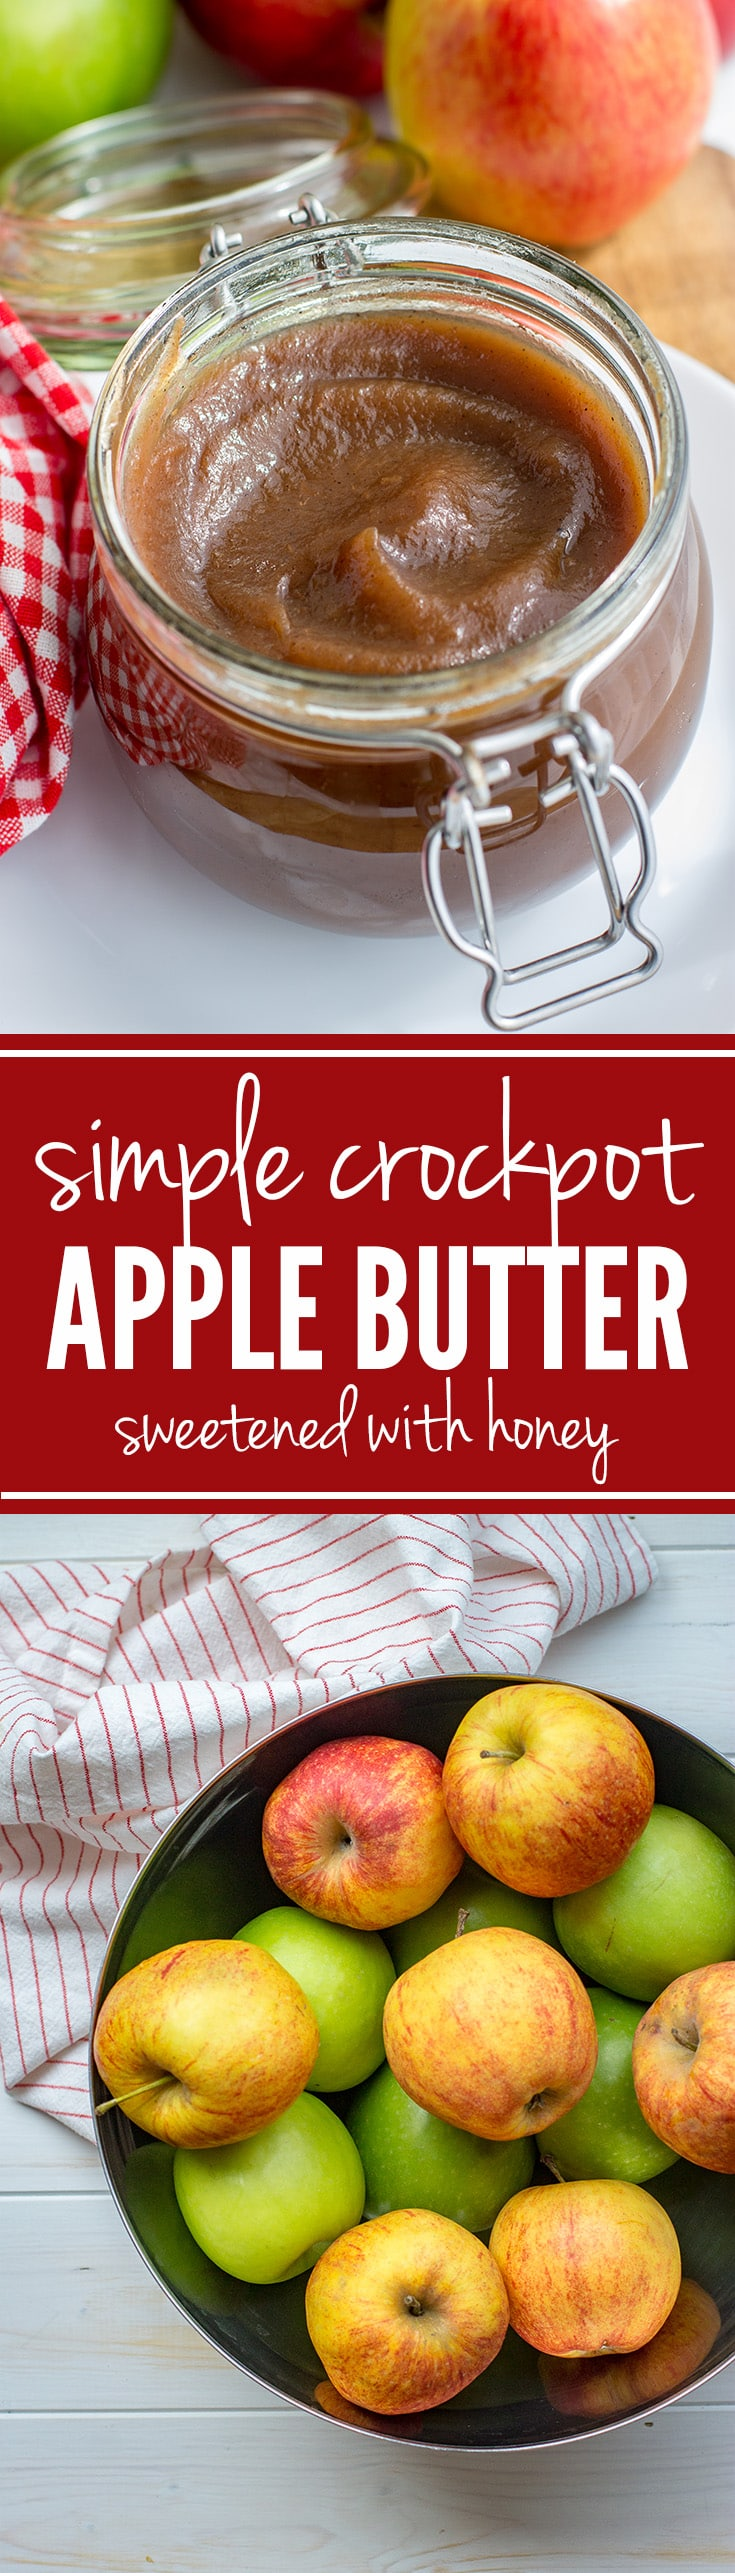 Crockpot apple butter sweetened with honey | Fall baking starts with this amazing homemade apple butter, made in the slow cooker, sweetened with honey. #applebutter #fallbaking #crockpot